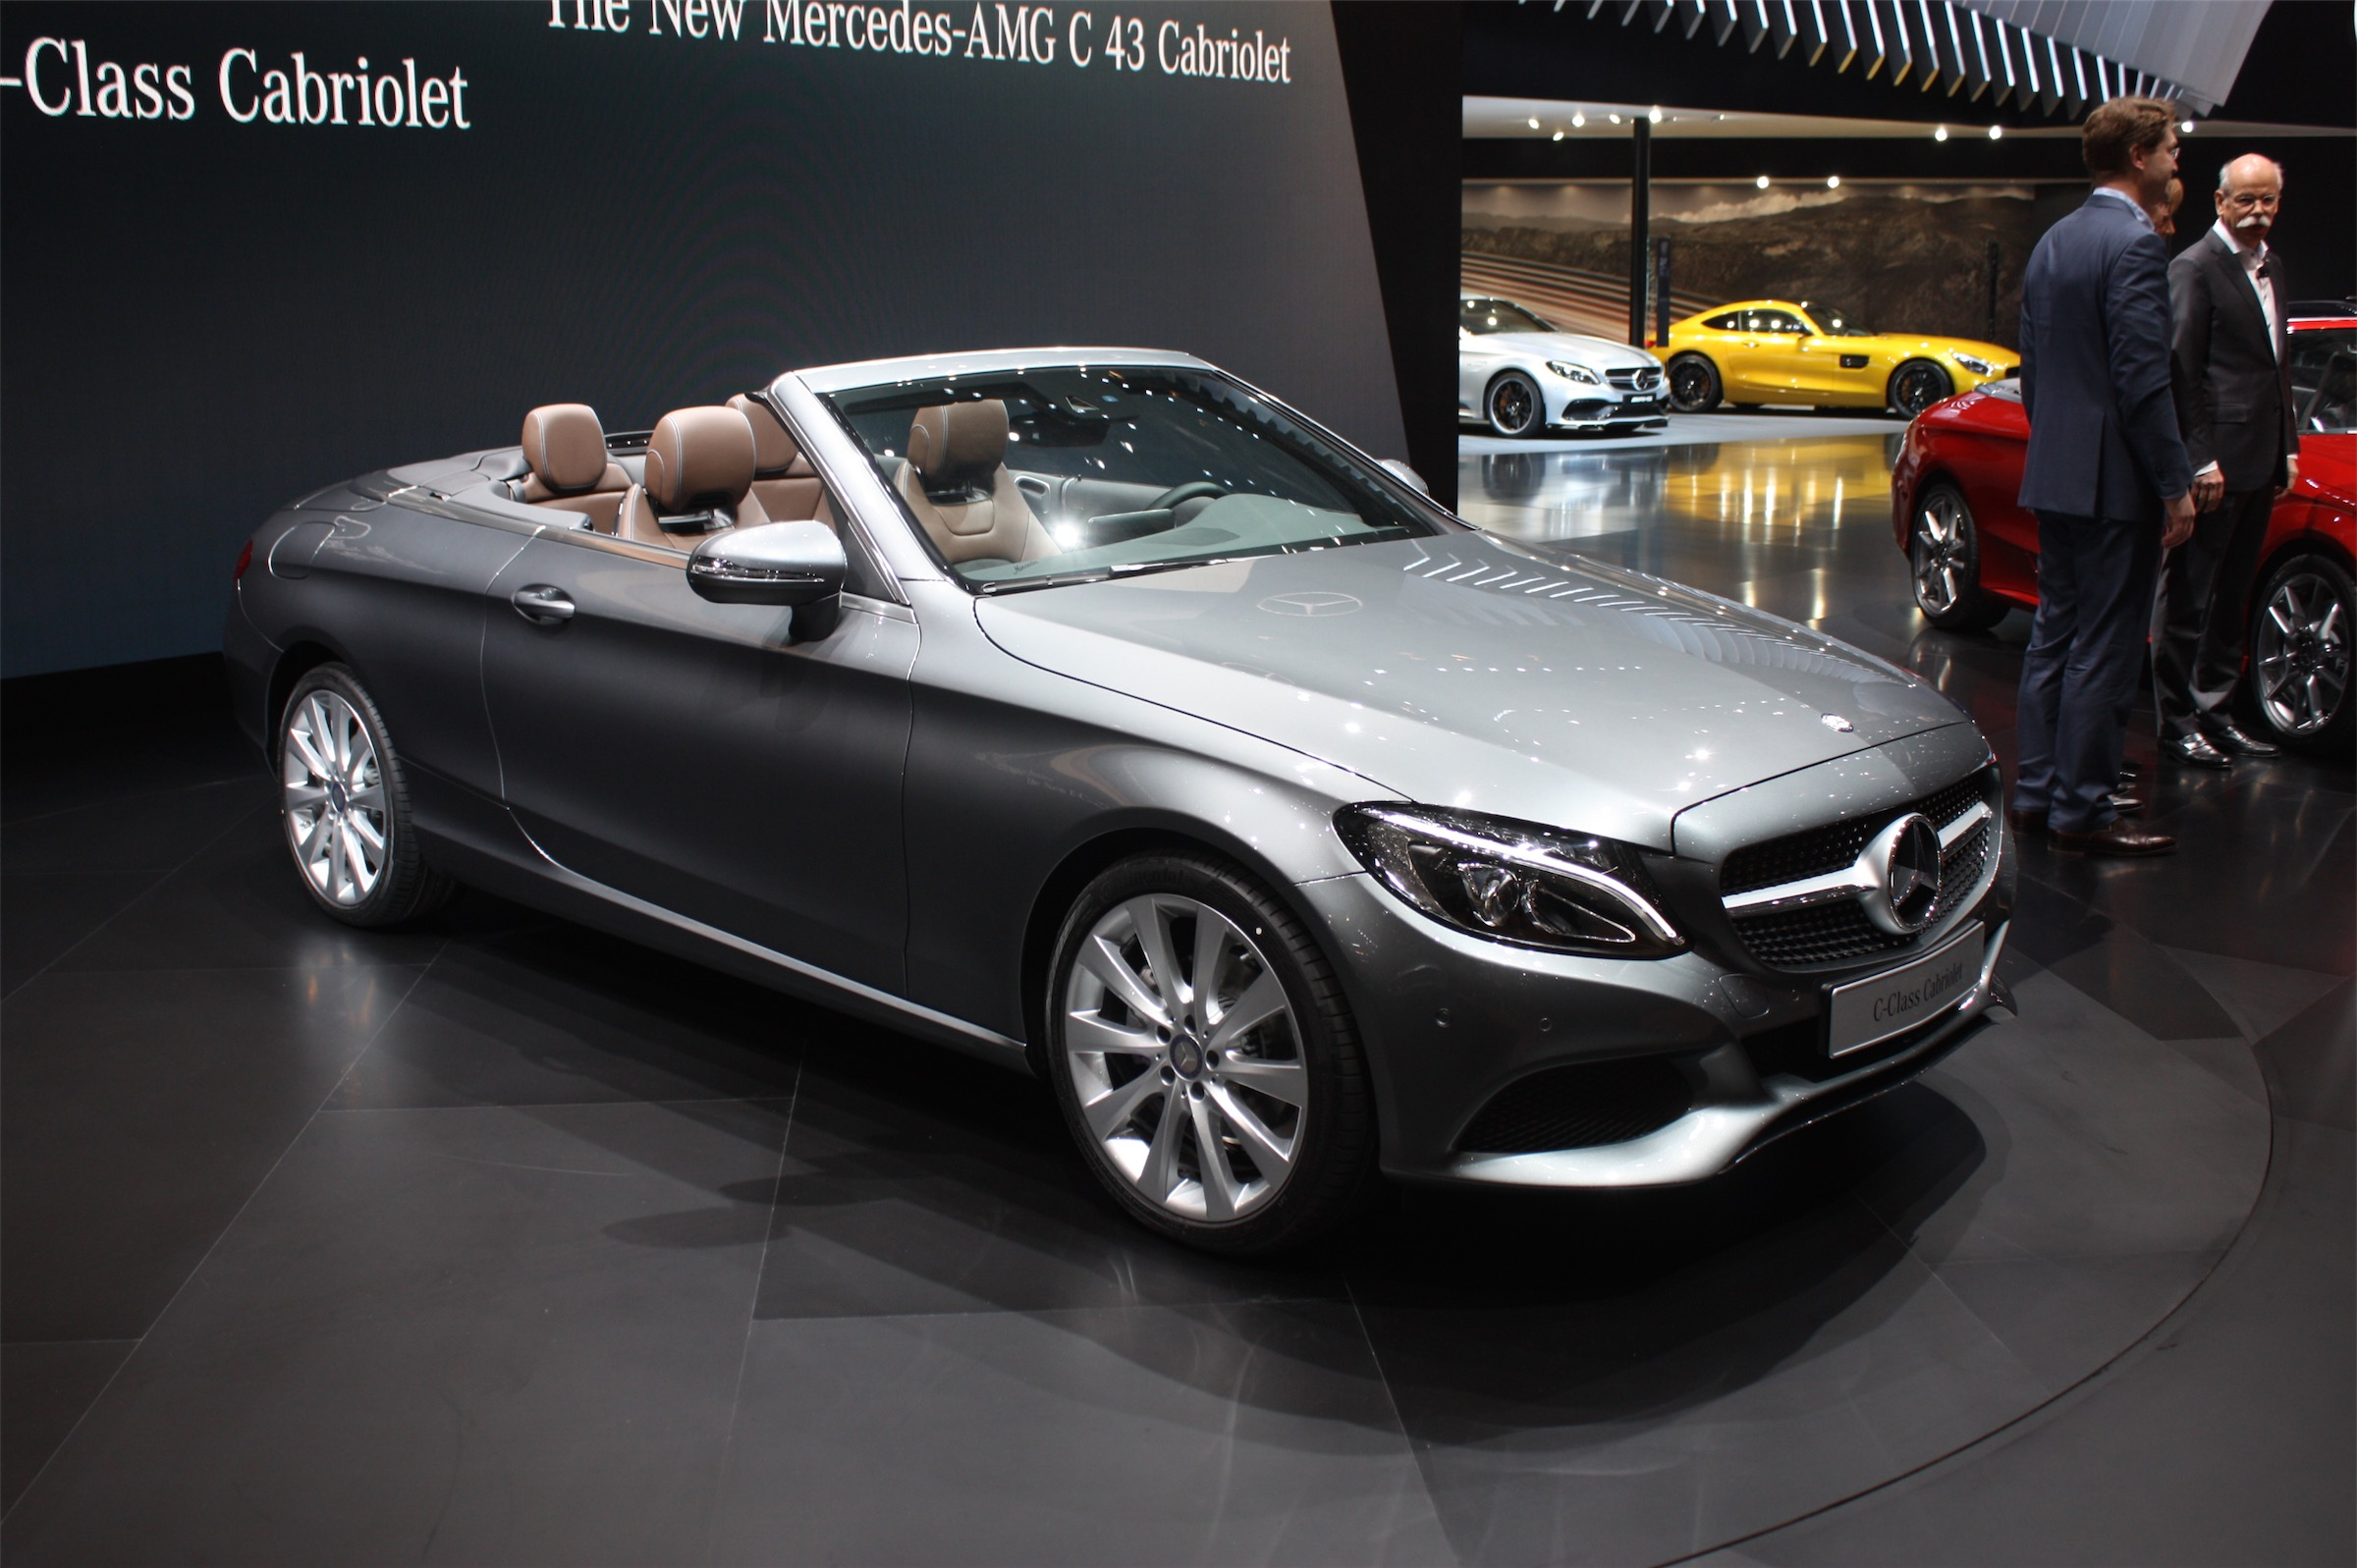 2017 mercedes benz c class convertible release date price and specs roadshow. Black Bedroom Furniture Sets. Home Design Ideas